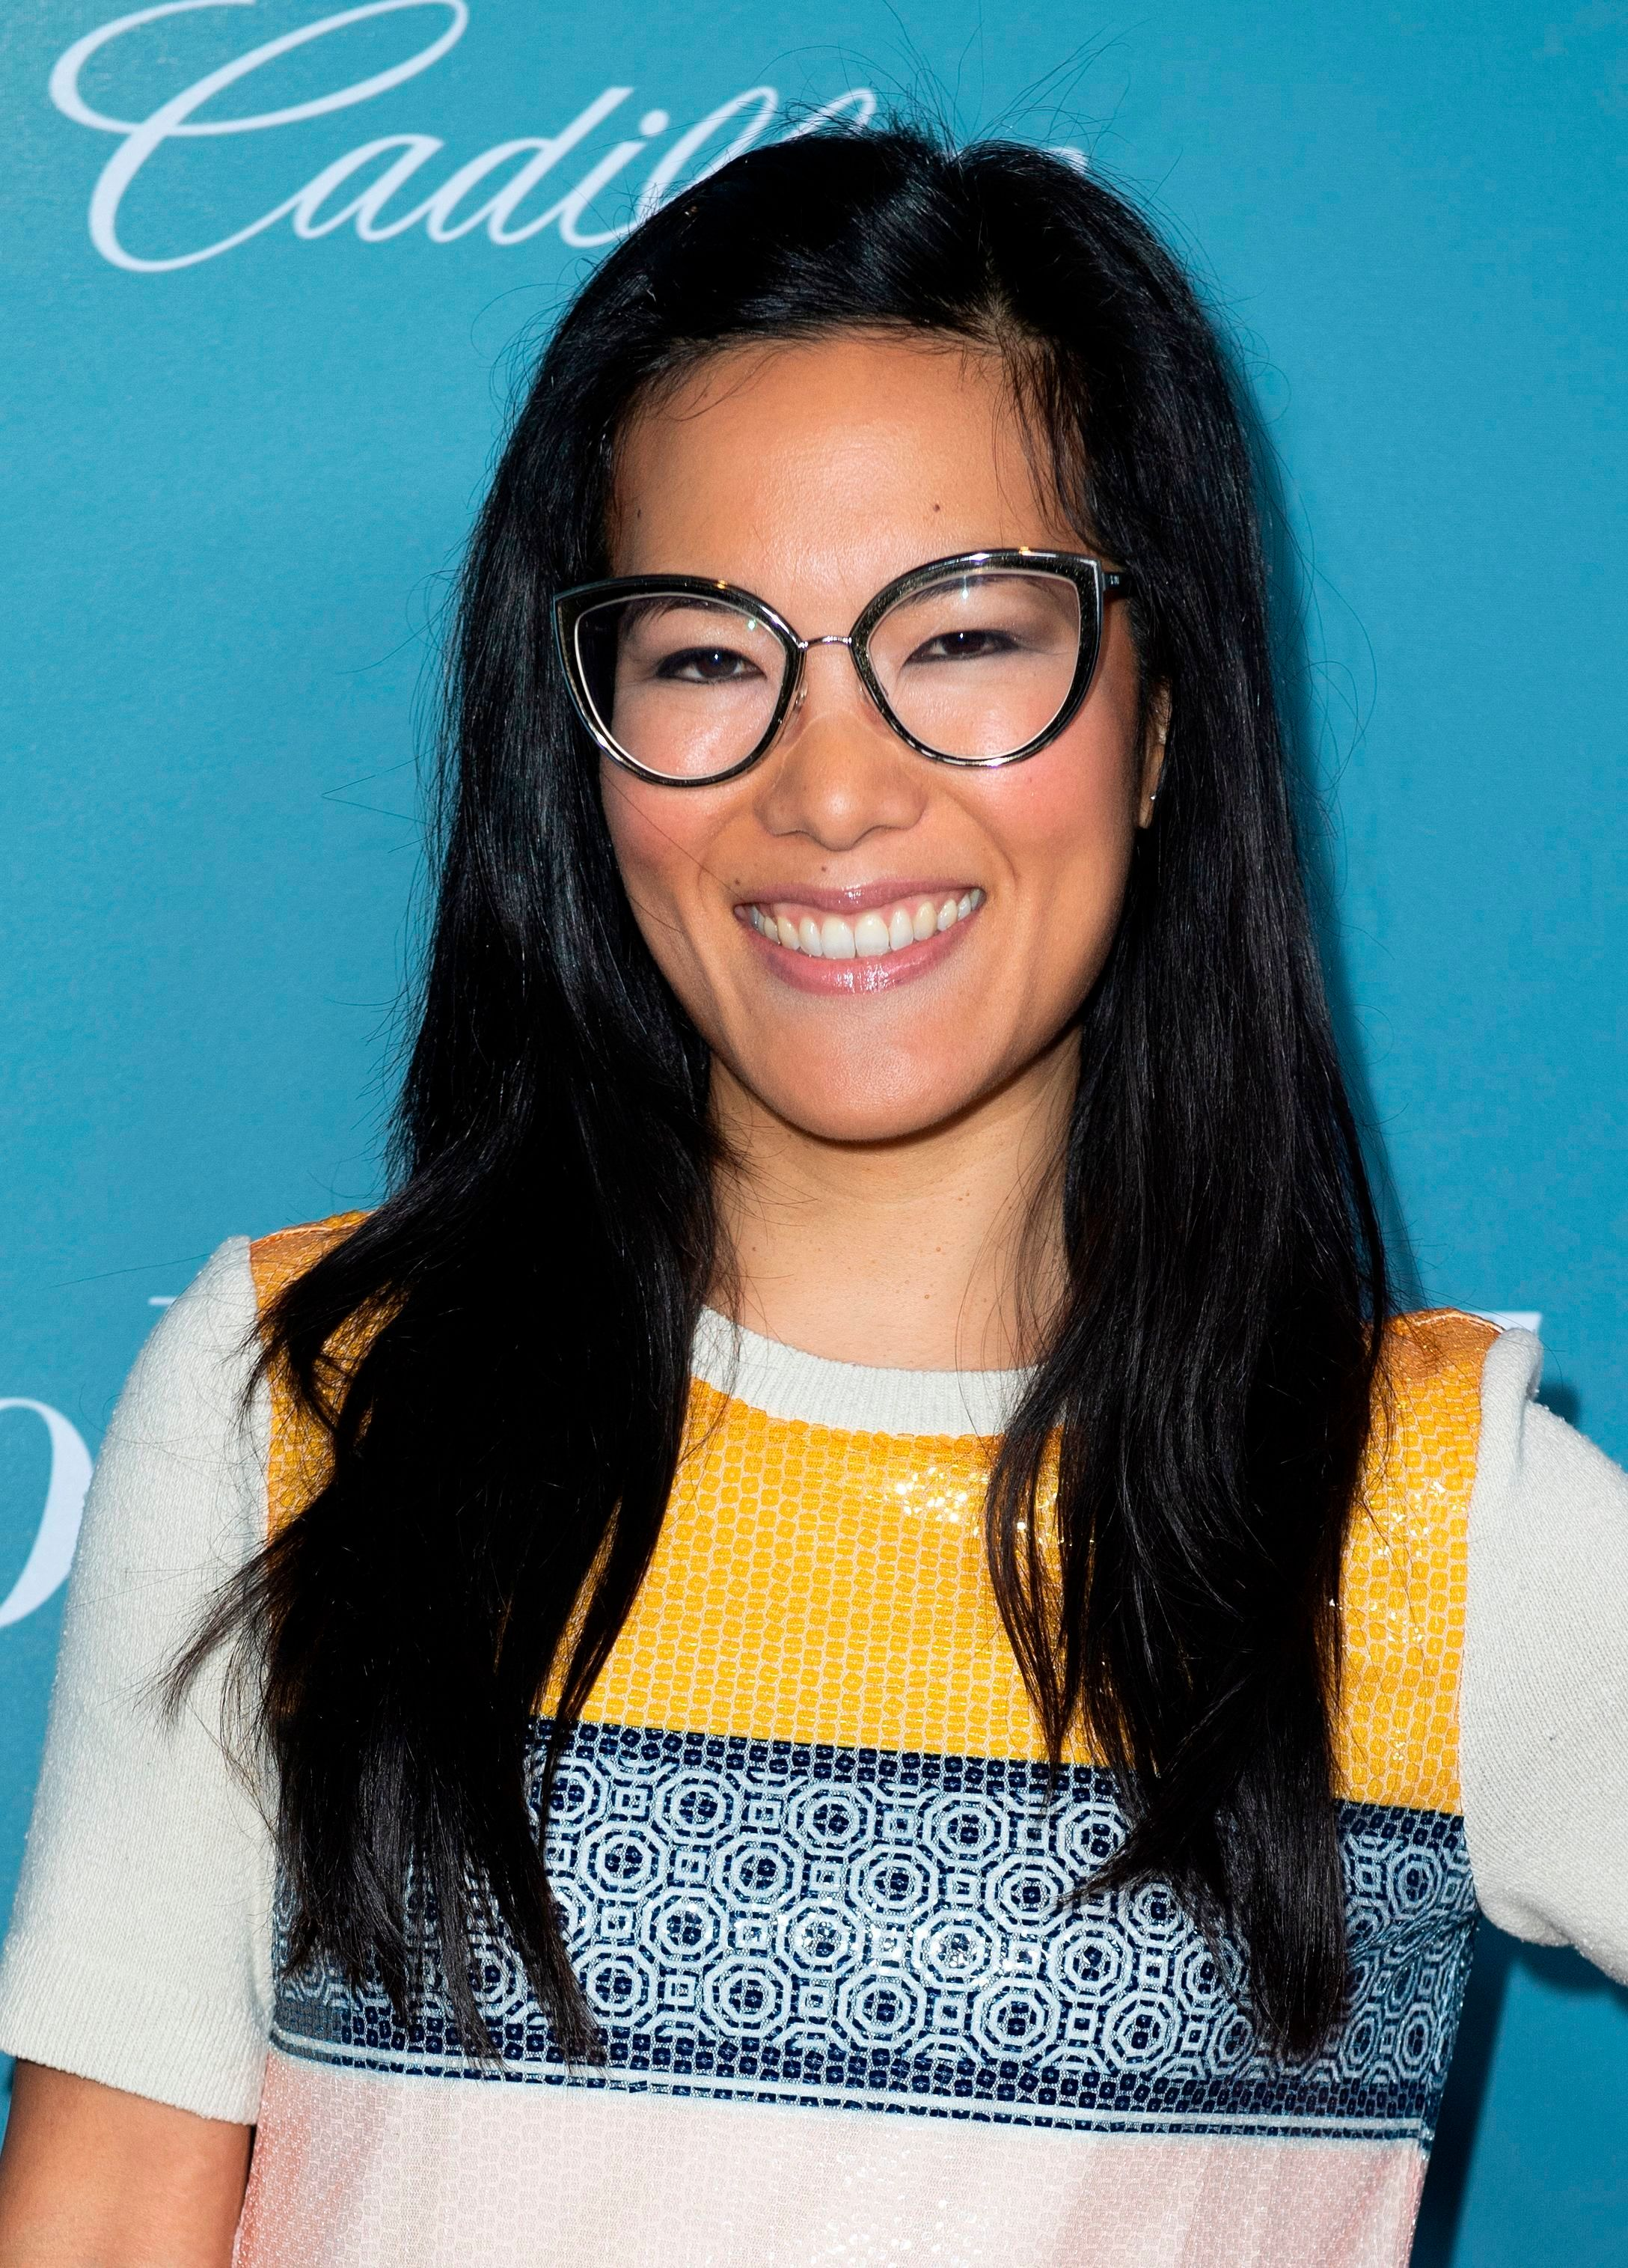 Actress Ali Wong attends The Hollywood Reporter's Power 100 Women In Entertainment at Milk Studios, in Los Angeles, California, on December 5, 2018. (Photo by VALERIE MACON / AFP)        (Photo credit should read VALERIE MACON/AFP/Getty Images)